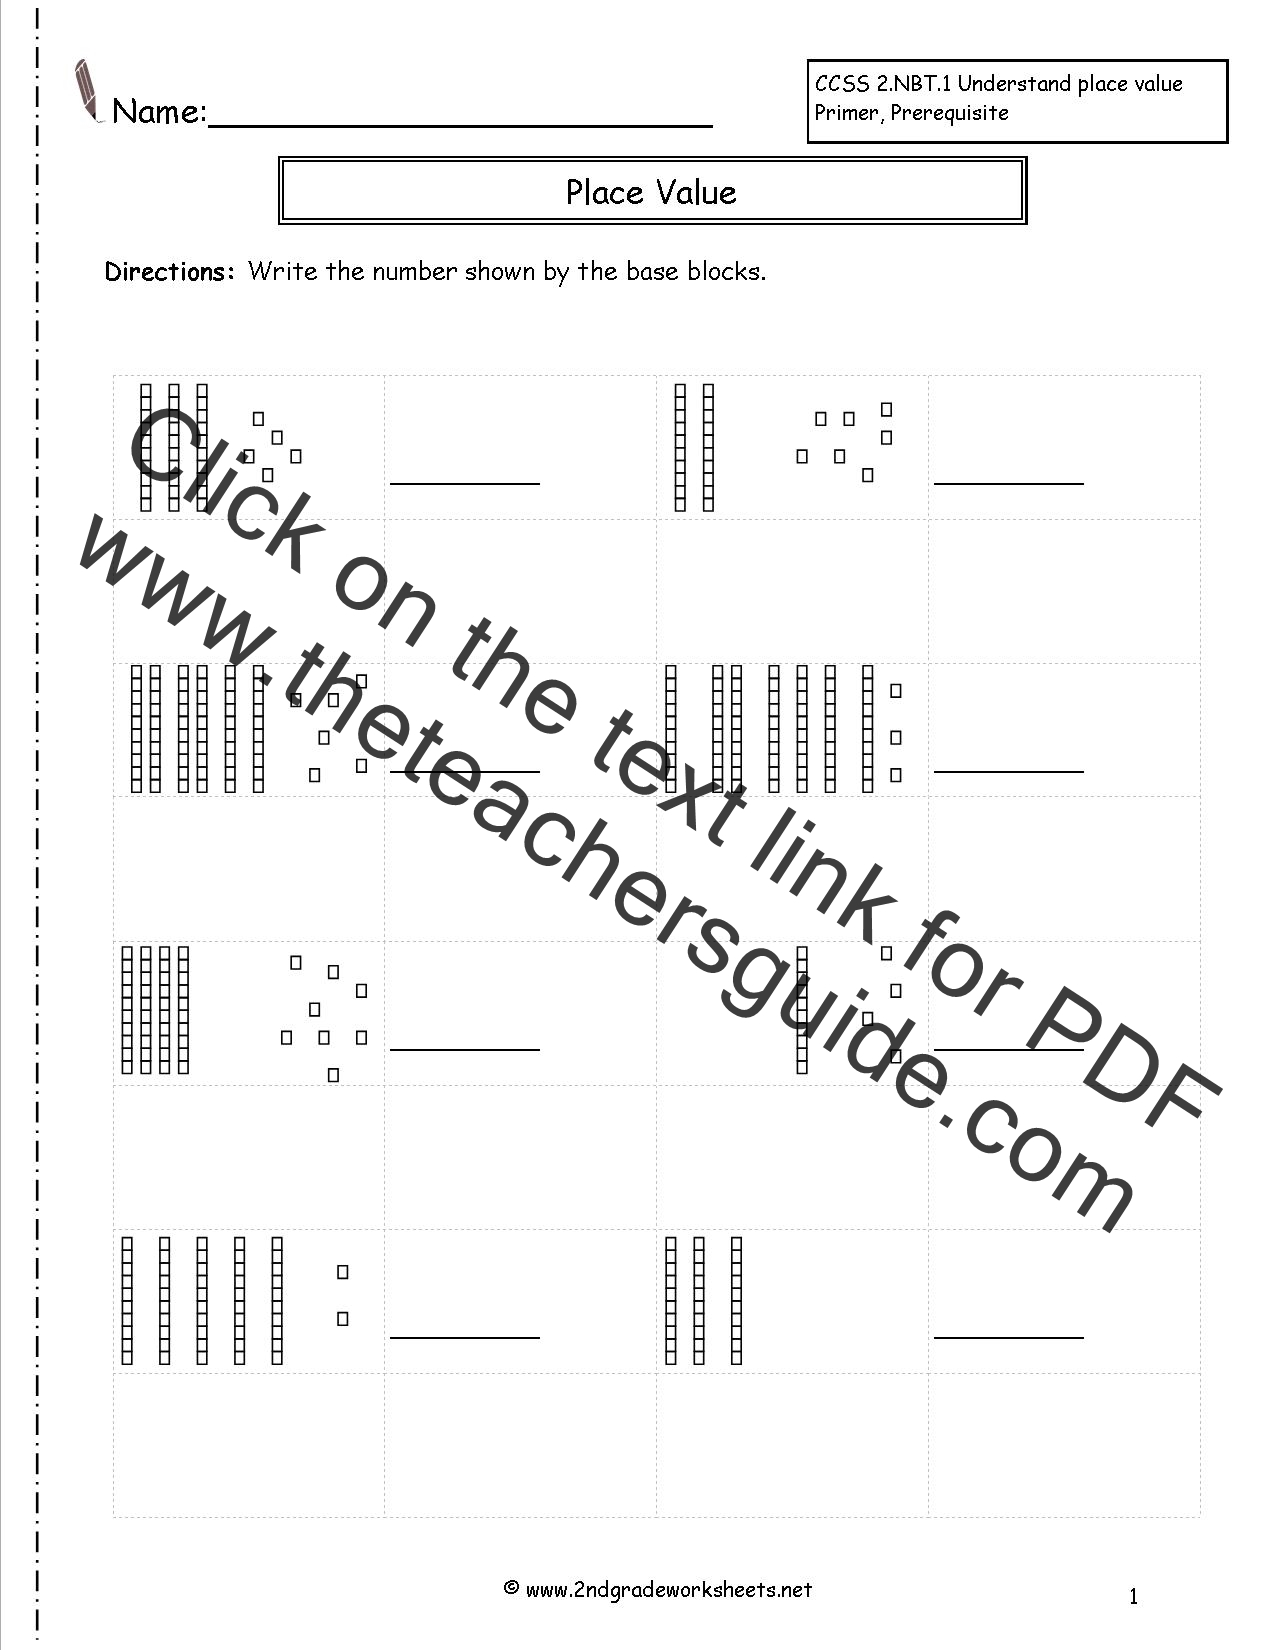 Second Grade Place Value Worksheets – Adding Tens and Ones Worksheets